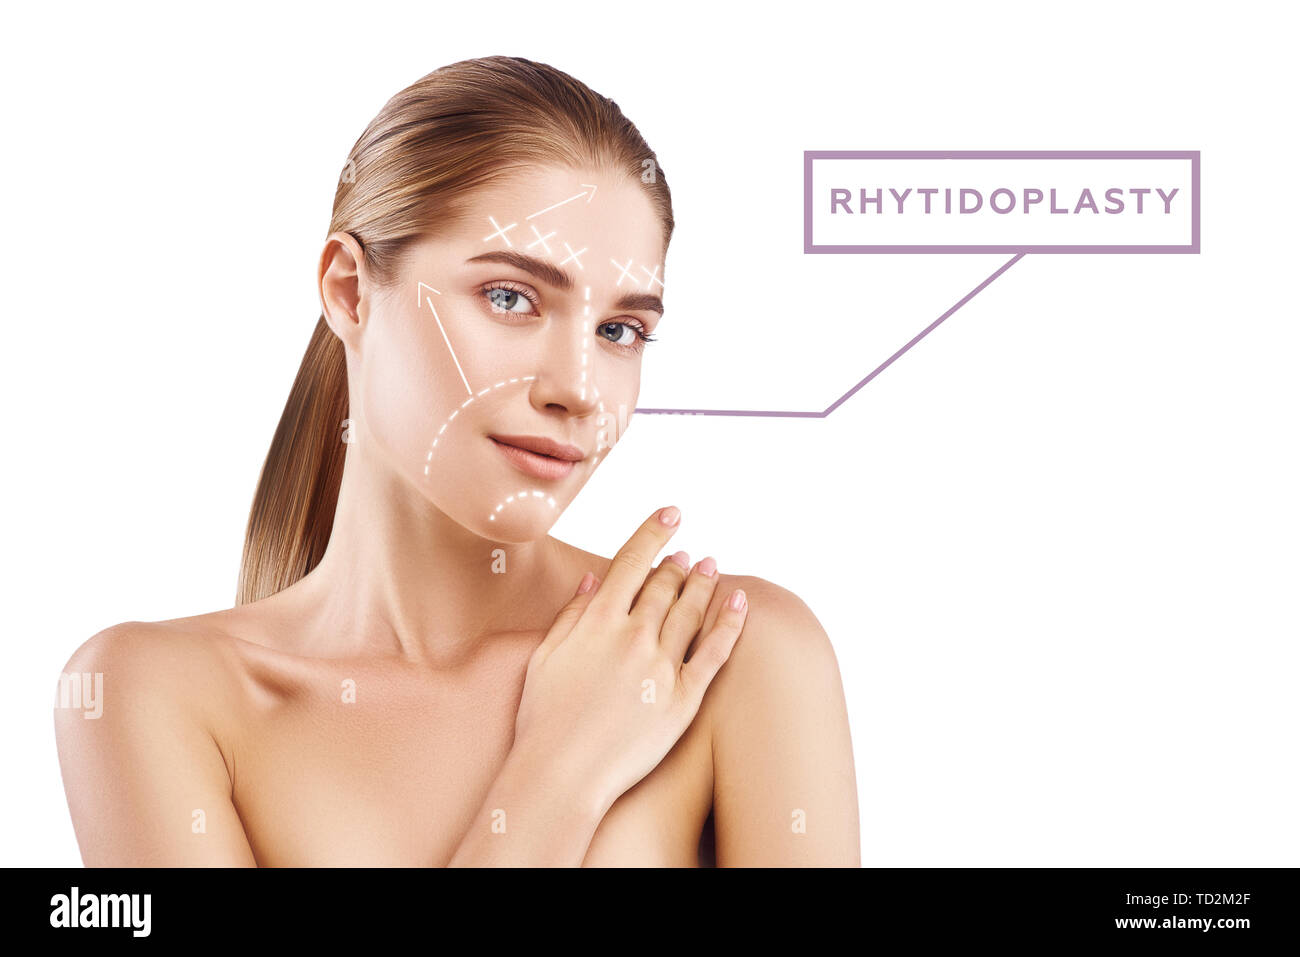 Rhytidoplasty concept. Portrait of beautiful and young woman with perfect skin and graphic lines and arrows over her face. Isolated on white background. Anti aging treatment and lifting skin concept - Stock Image